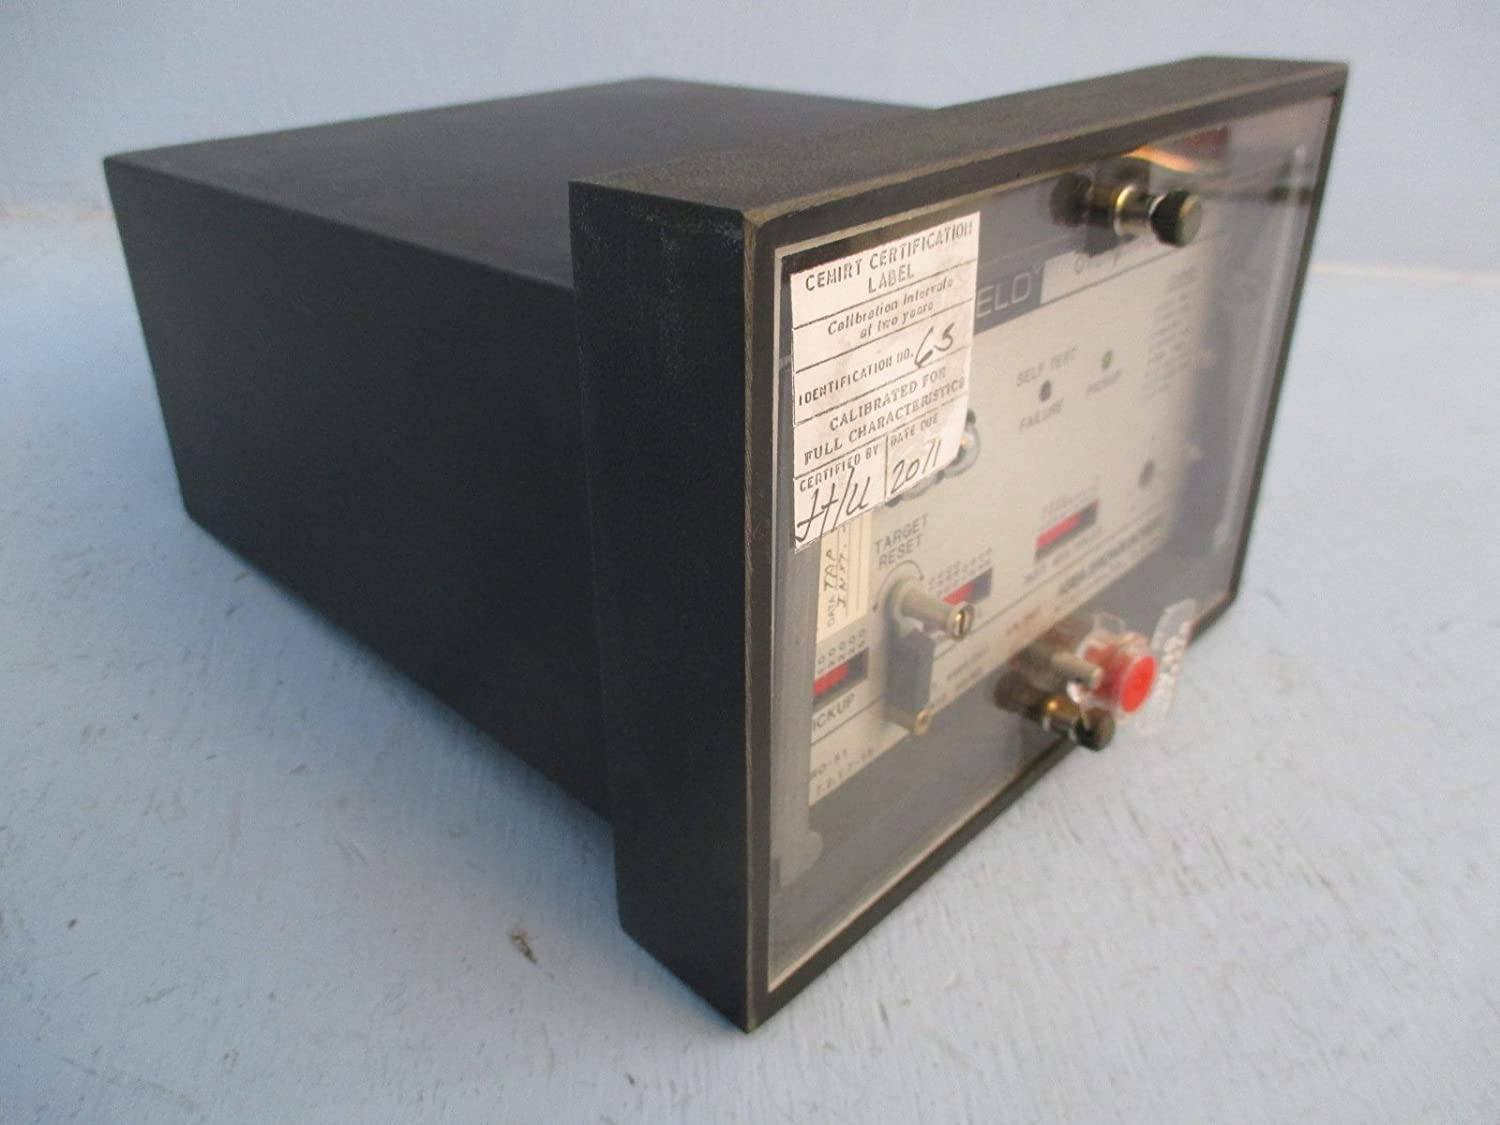 ABB S Circuit Shield Overcurrent Relay Asea Brown Boveri - Abb basic relay school